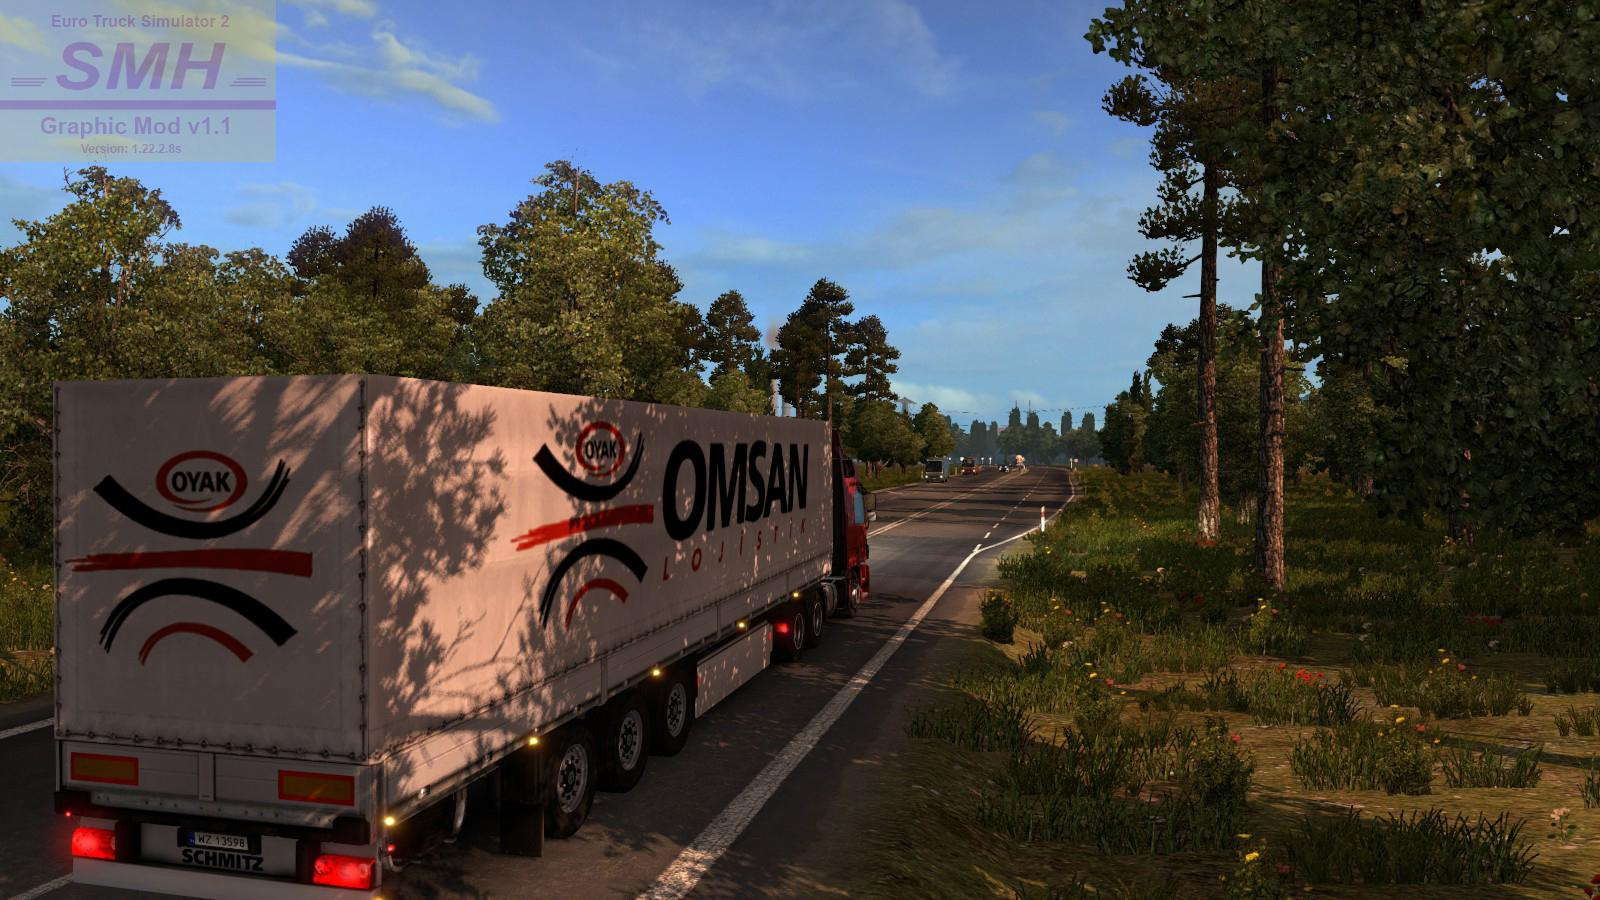 SMHKZL GRAPHIC MOD V1 1 (FIXED TEXTURES) 1 22 2 8S ETS2 (4) - ETS 2